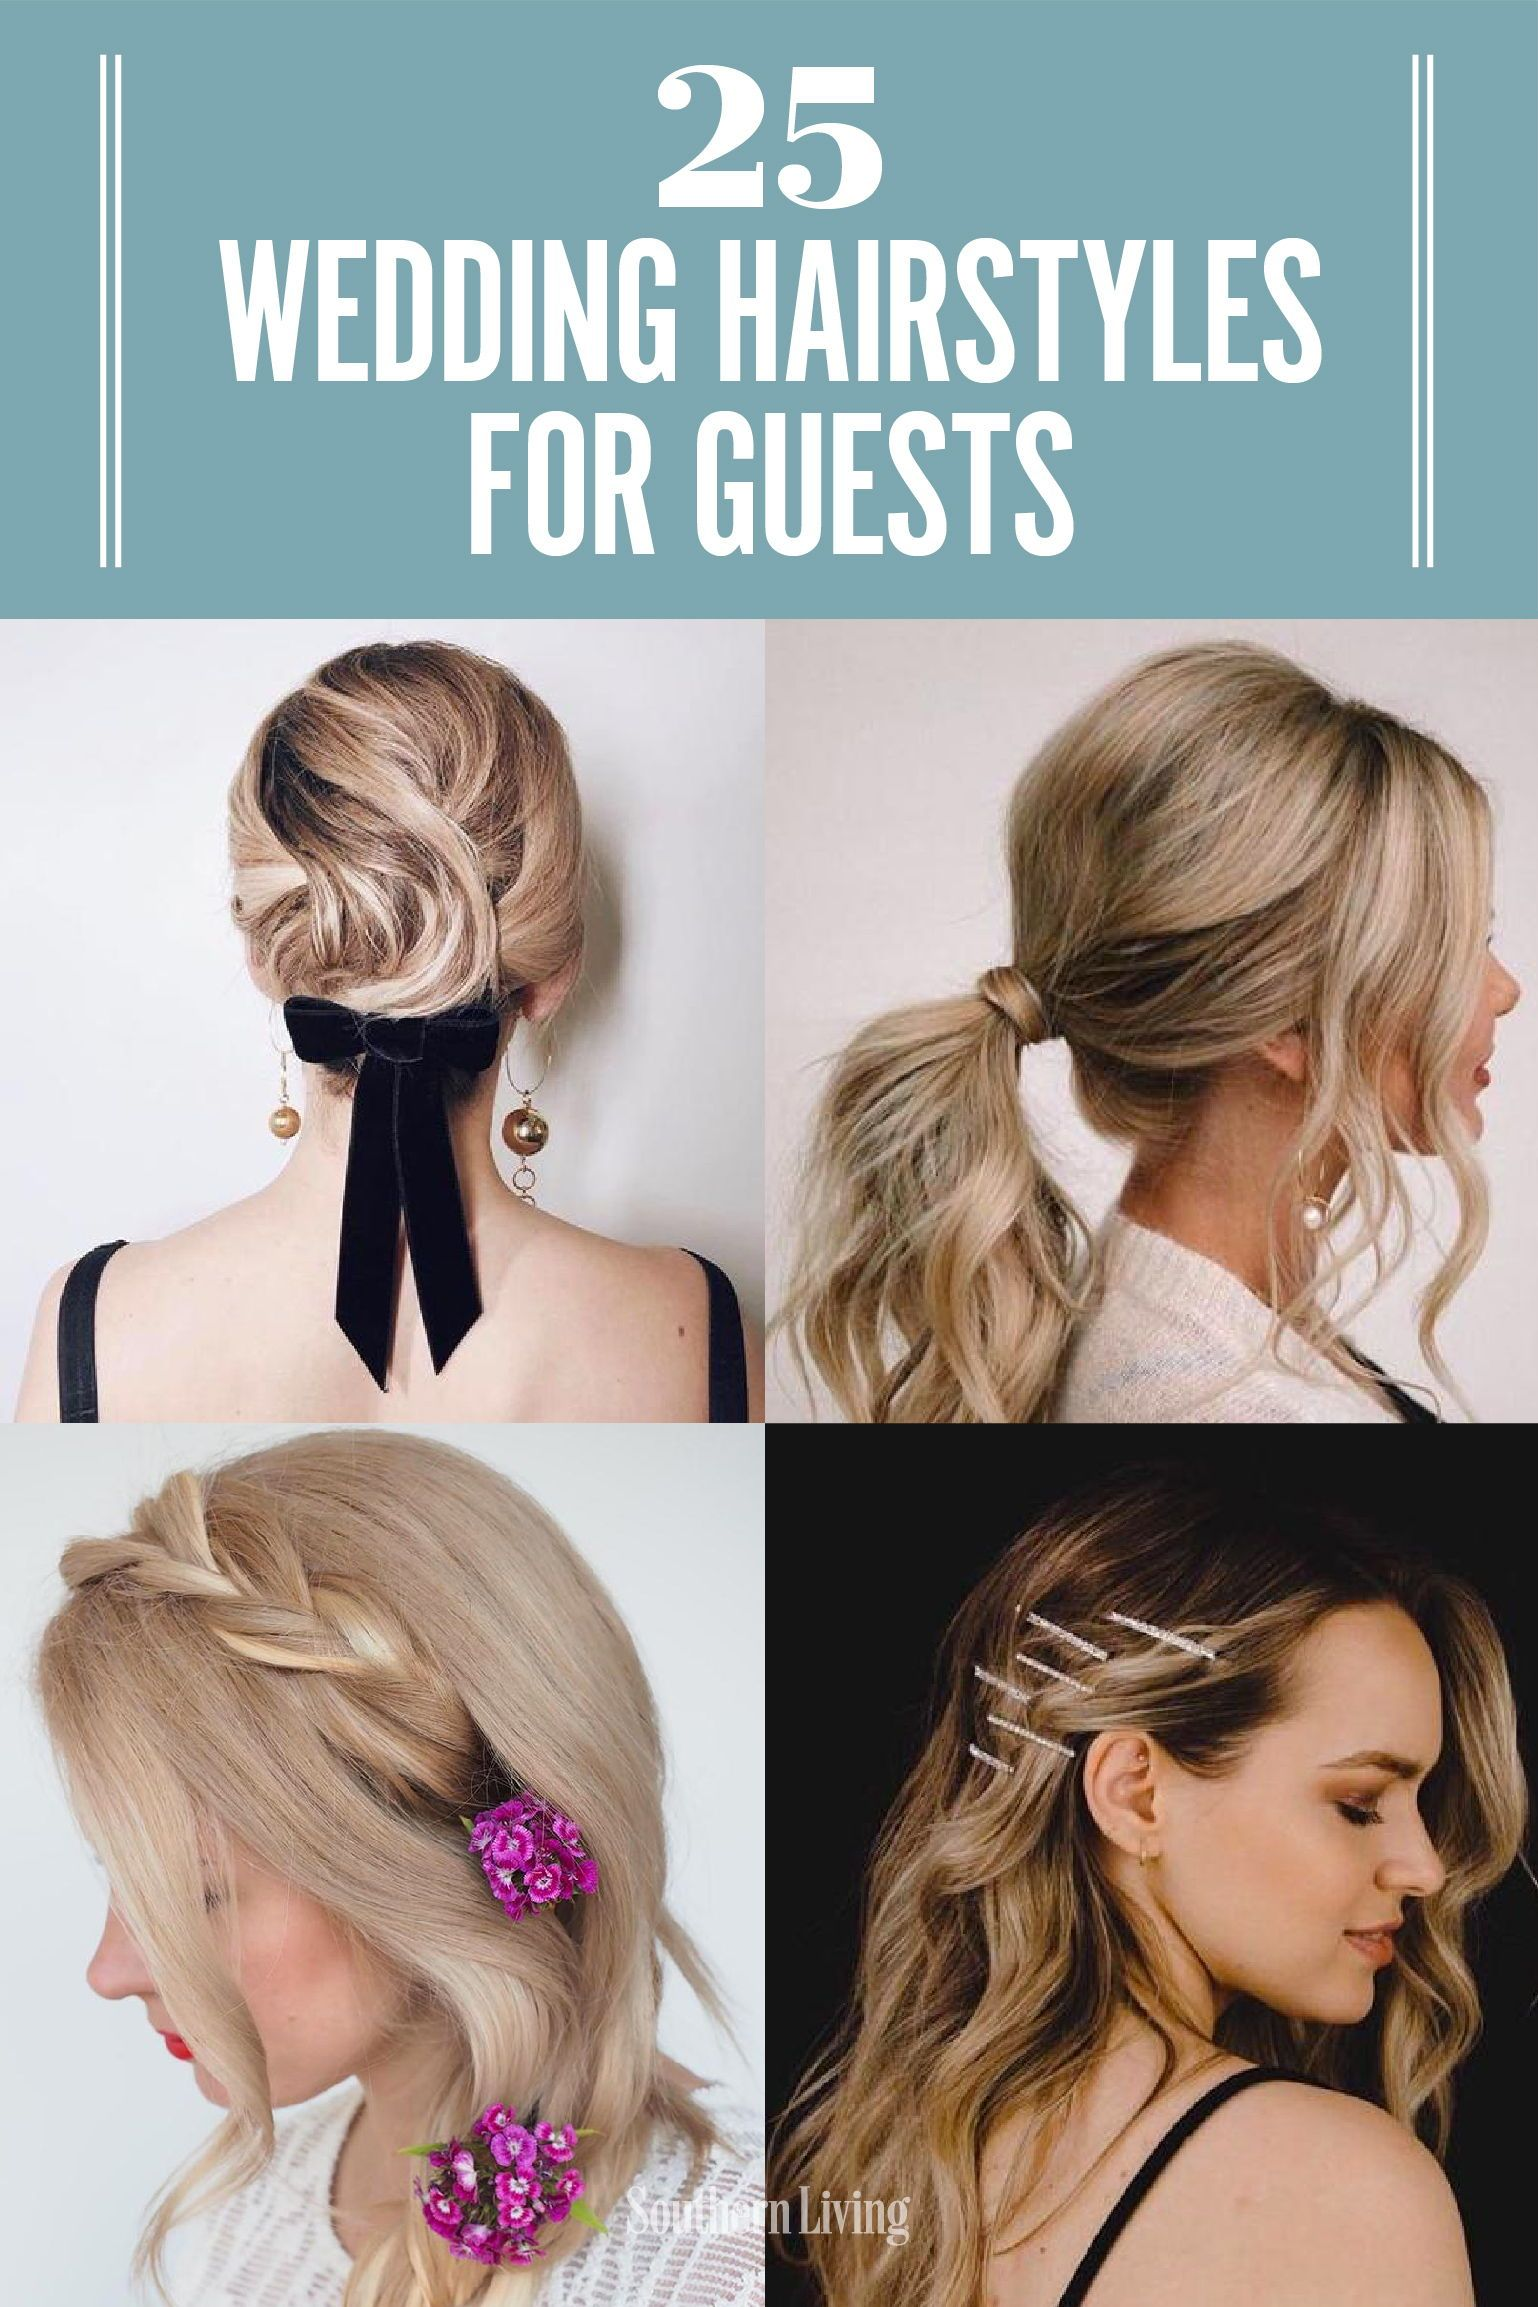 25 Easy Wedding Hairstyles For Guests That Ll Work For Every Dress Code Easy Wedding Guest Hairstyles Wedding Guest Hairstyles Hairdo For Wedding Guest